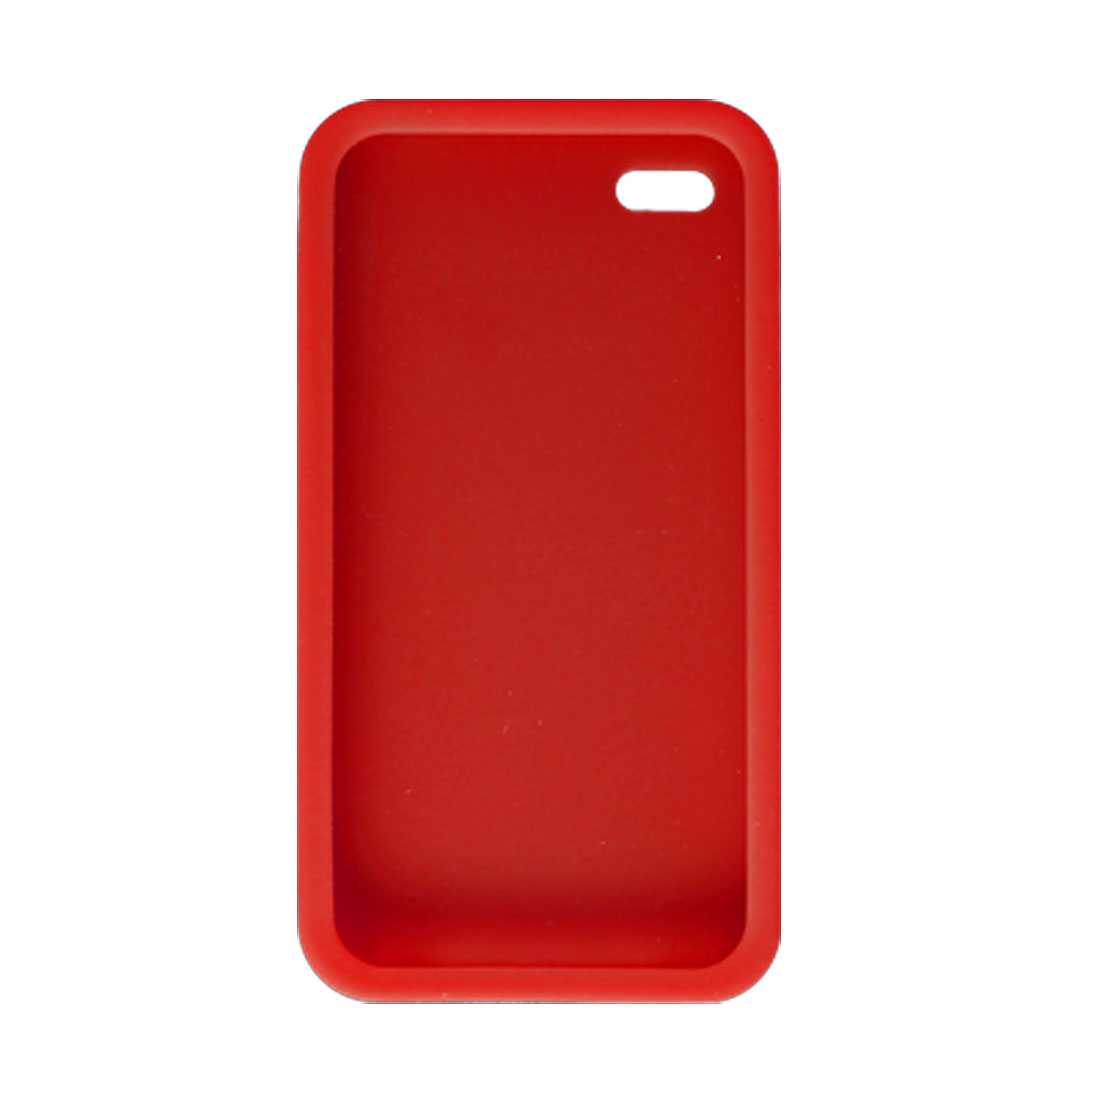 Red Silicone Skin Cover Case Shell for Apple iPhone 4 4G